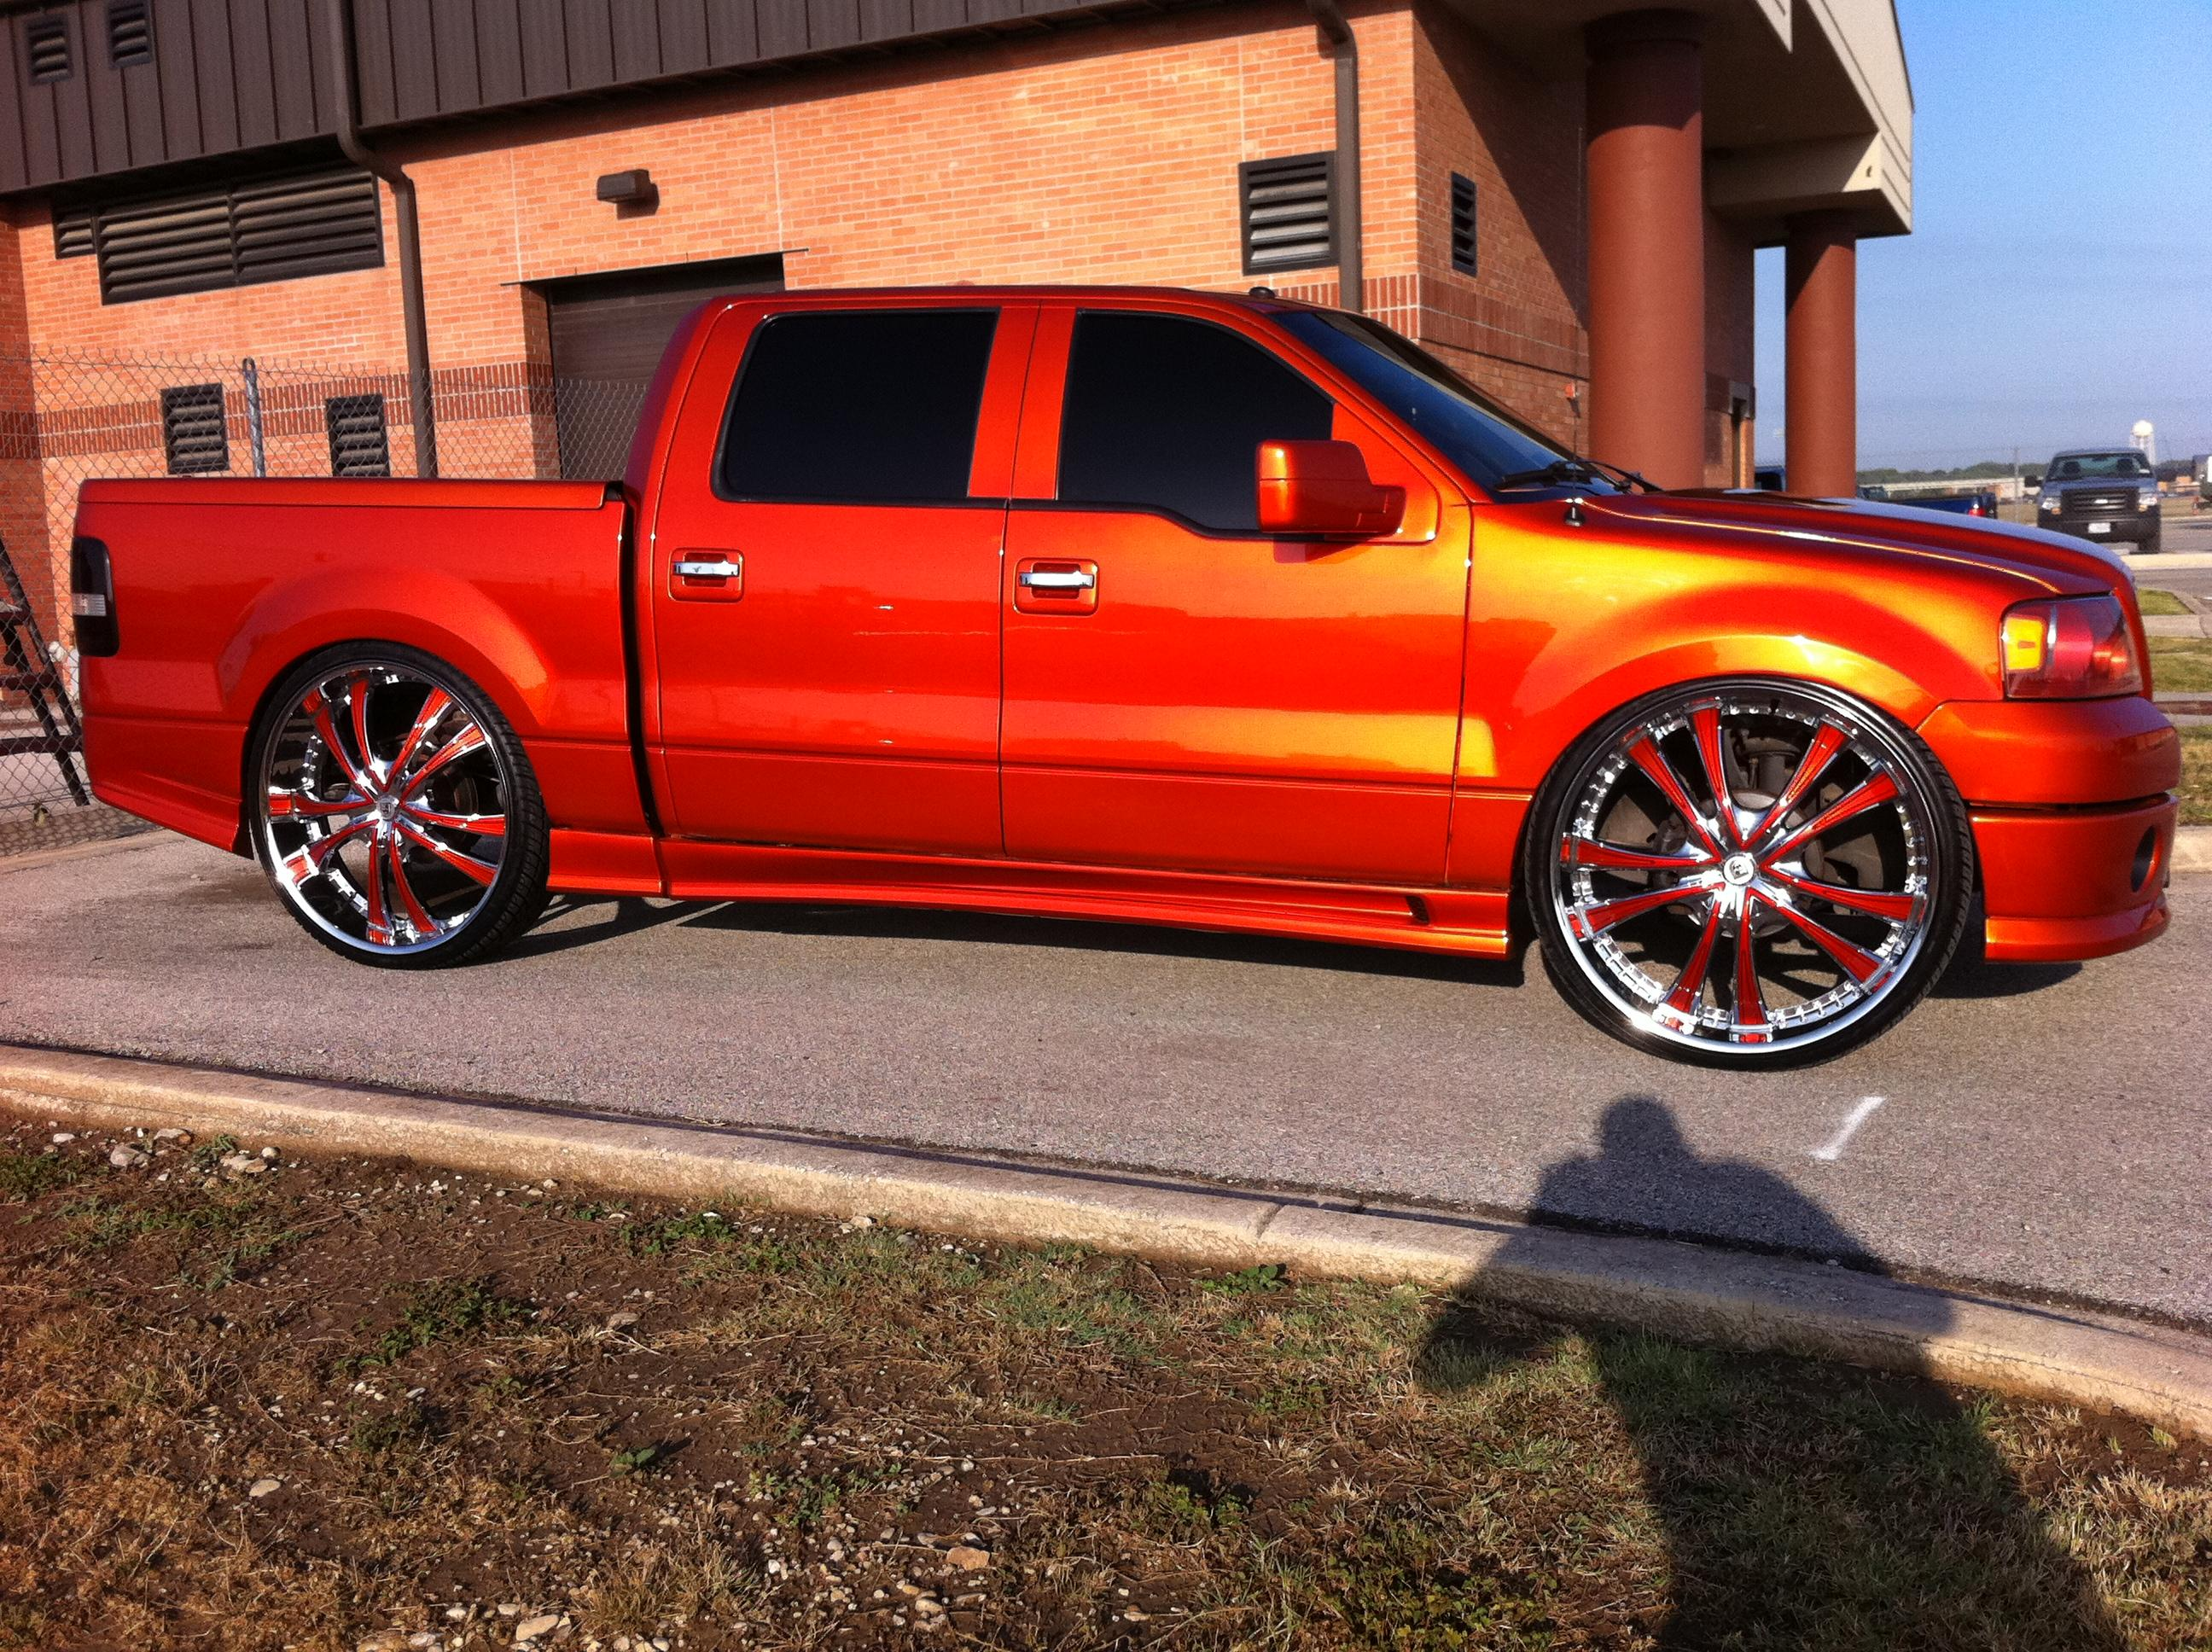 Tukin30s's 2008 Ford F150 SuperCrew Cab